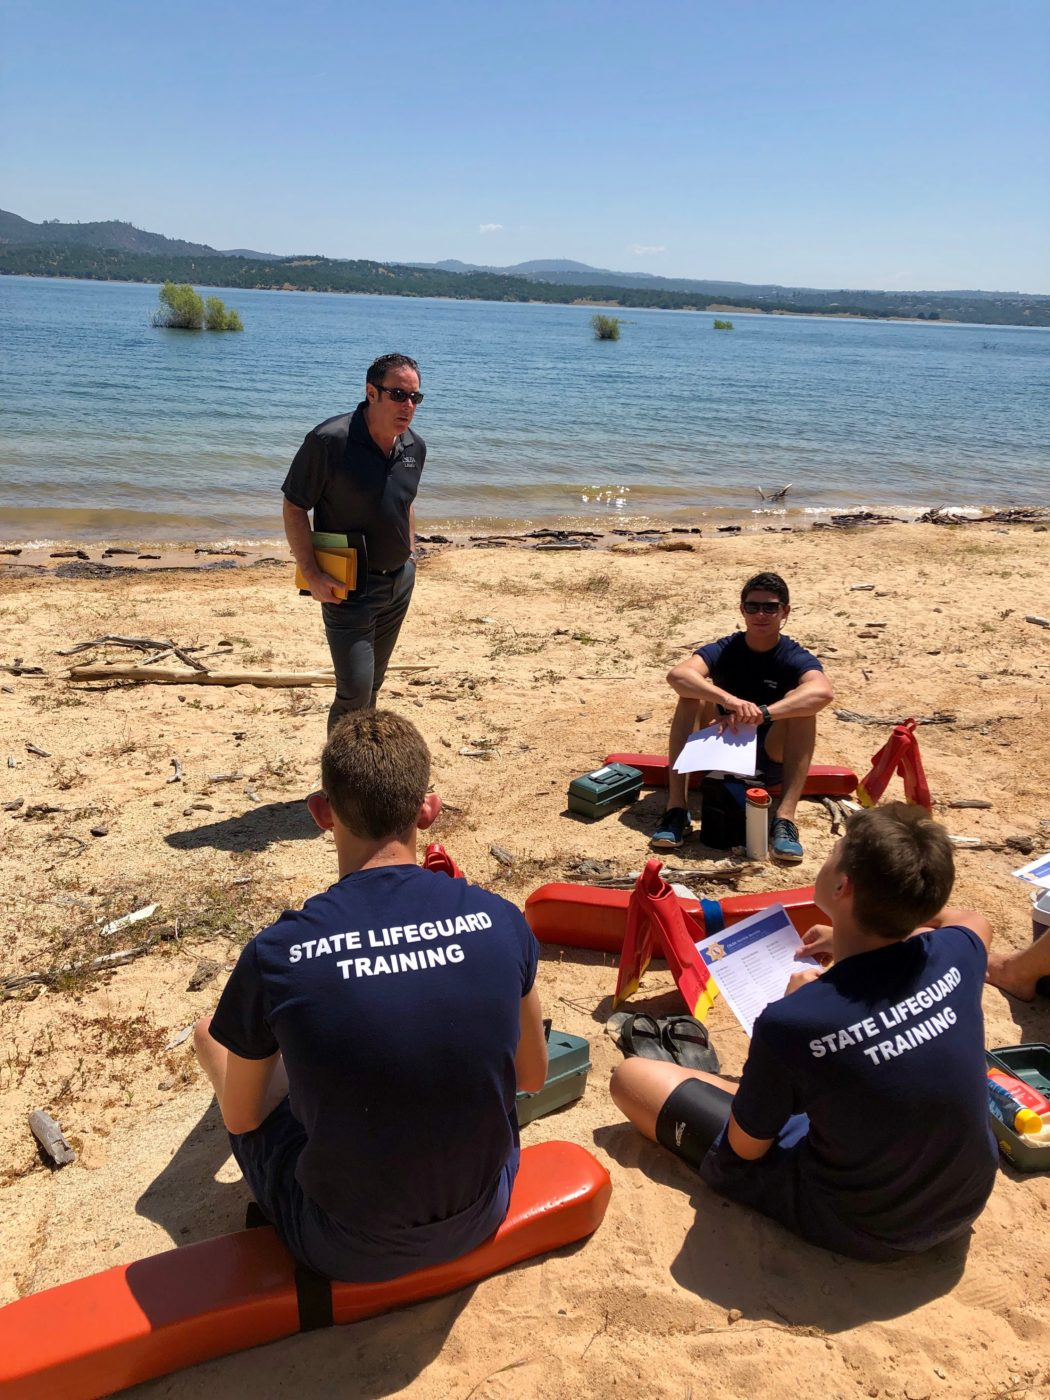 CSLEA Meets with new Seasonal Lifeguards at Folsom Lake